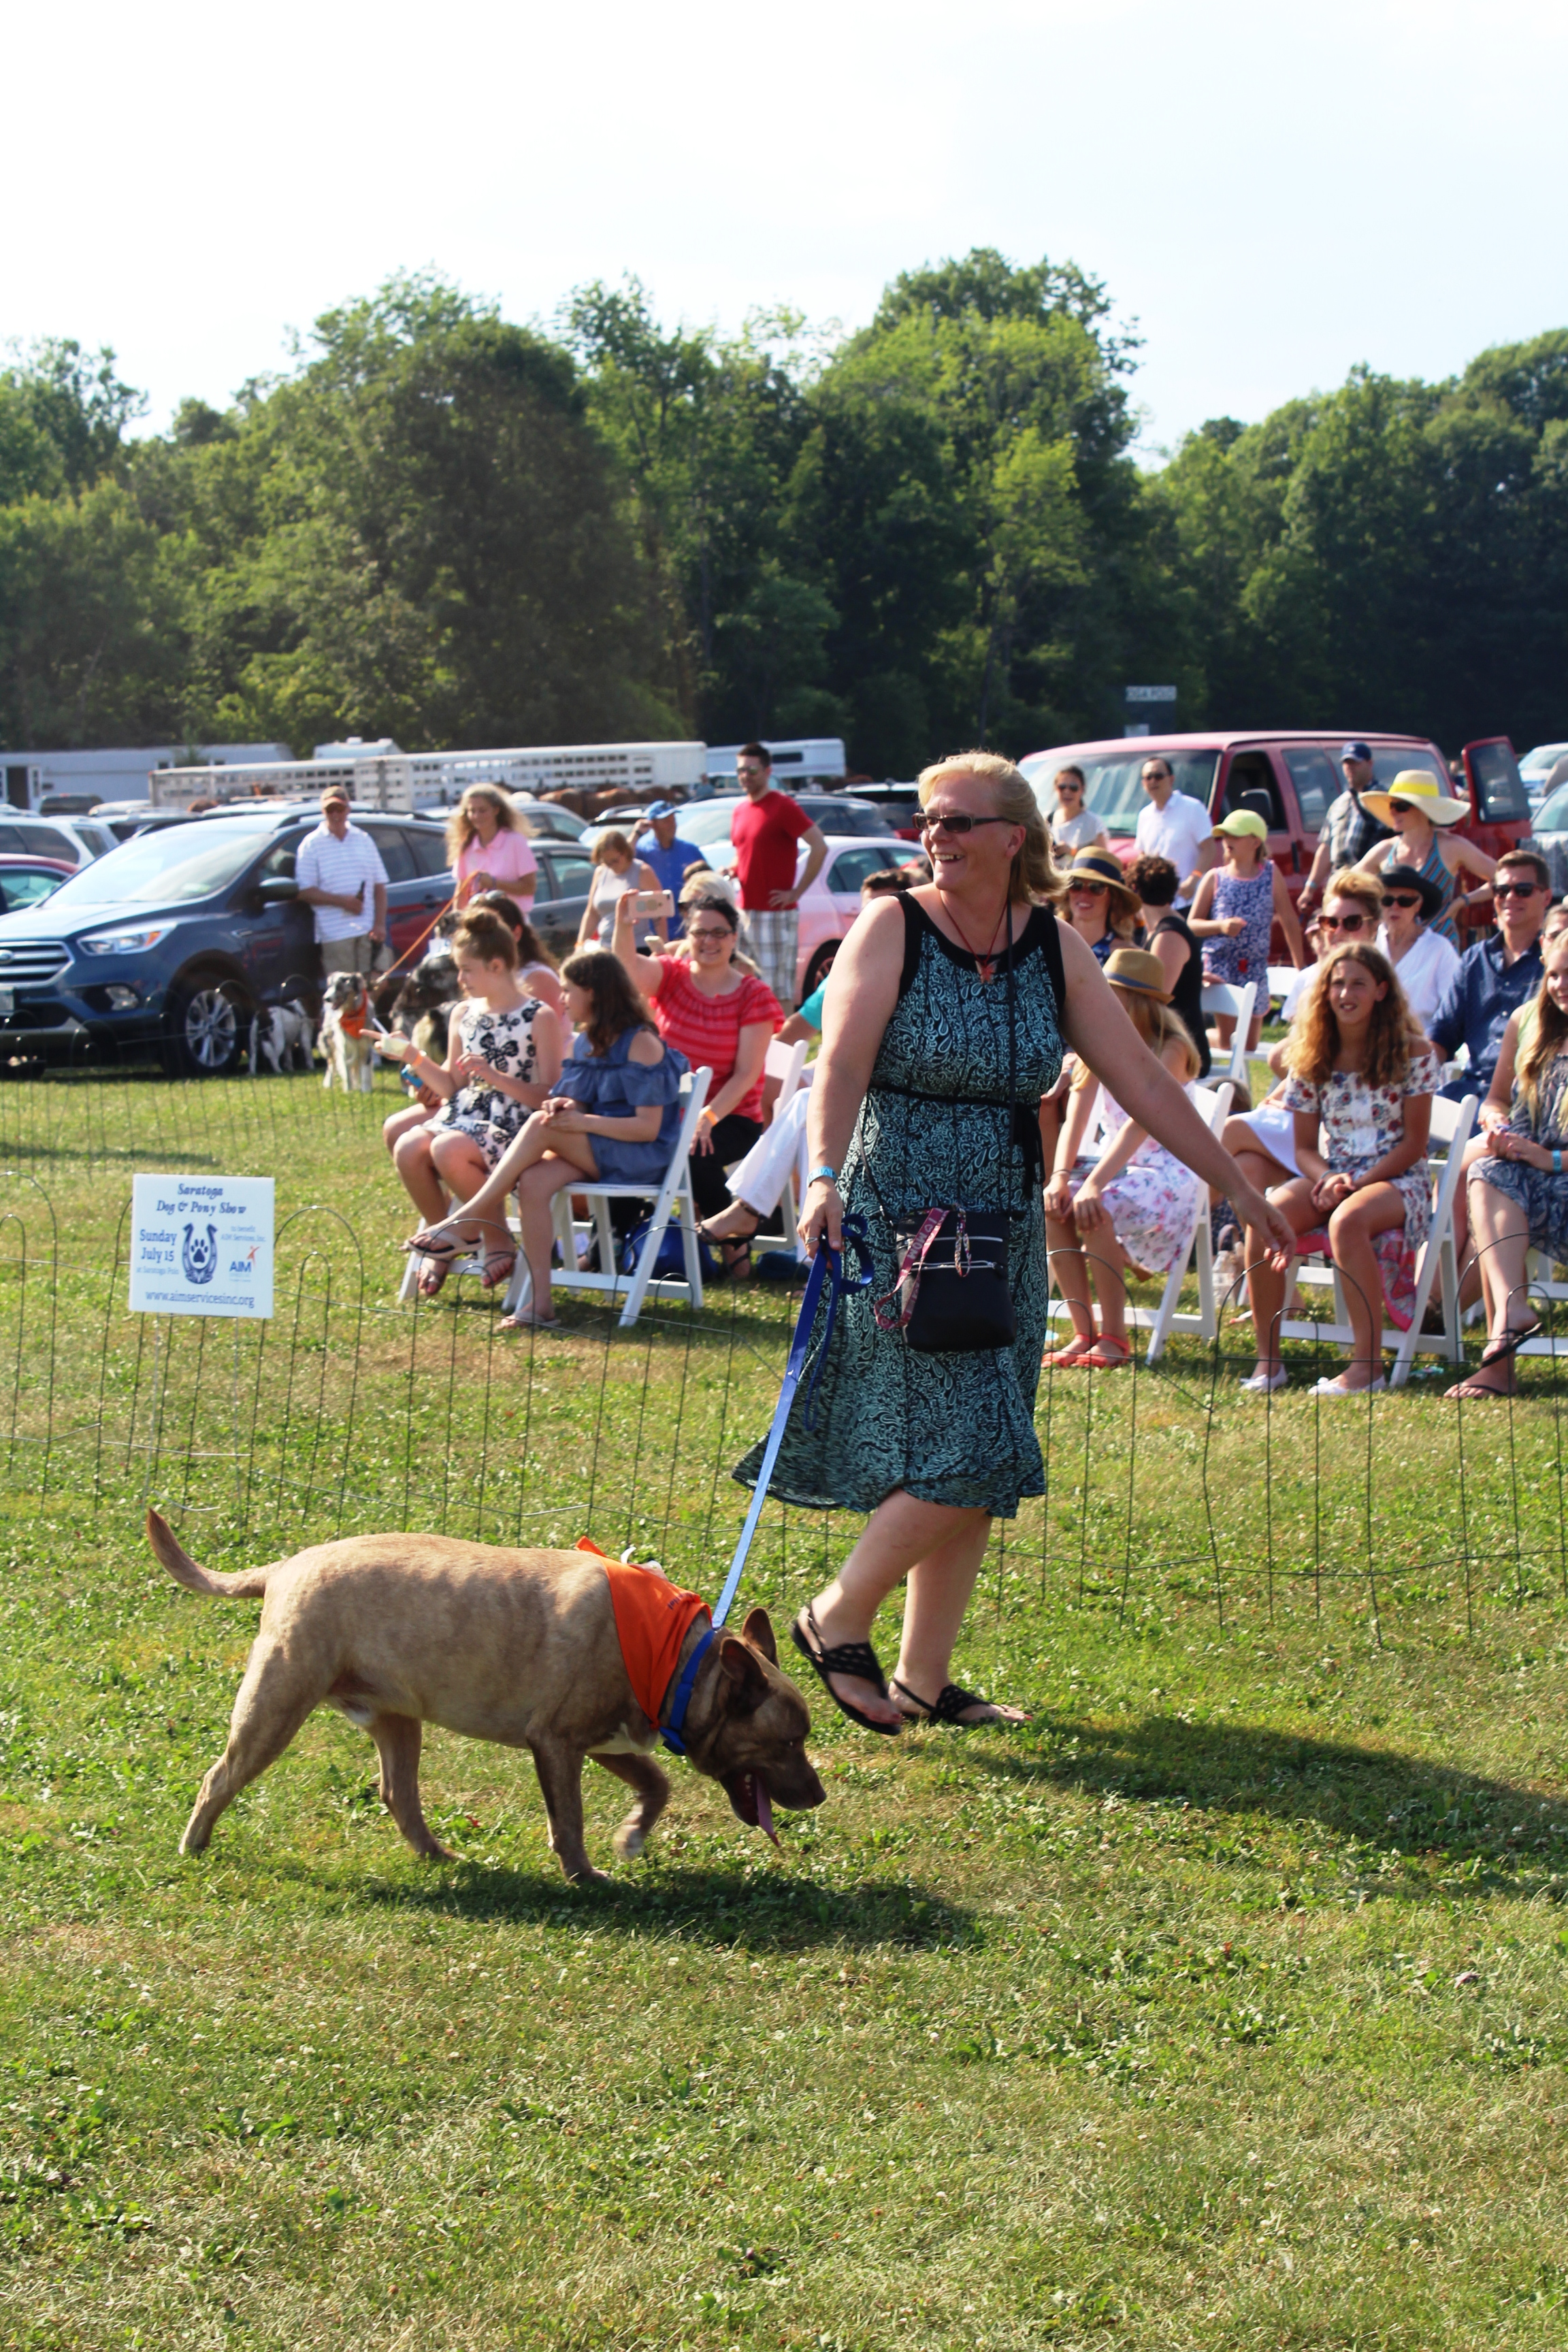 Woman smiling walking dog at the Saratoga Dog's Pony Show to benefit AIM Services, Inc.